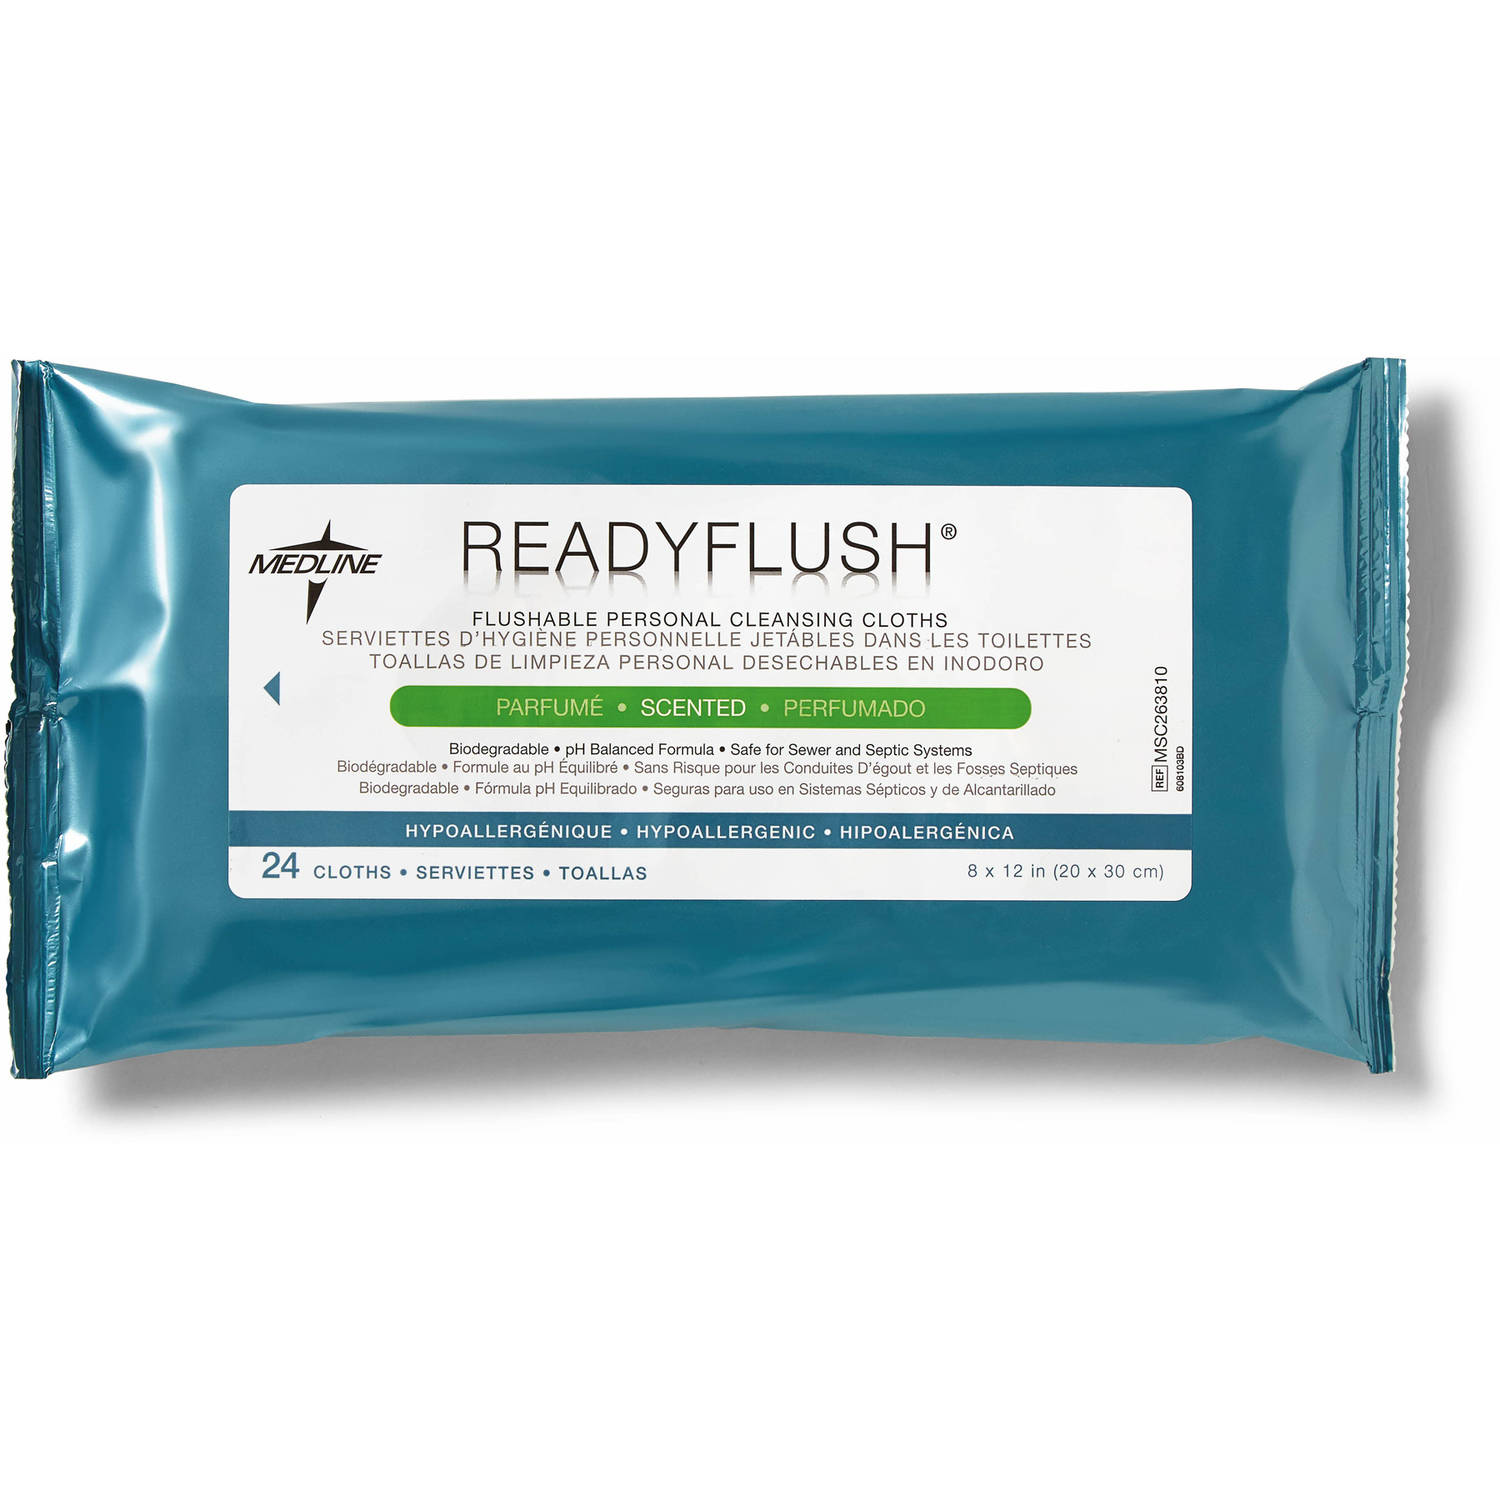 Medline ReadyFlush Flushable Cleansing Wipes, Scented, Case of 576